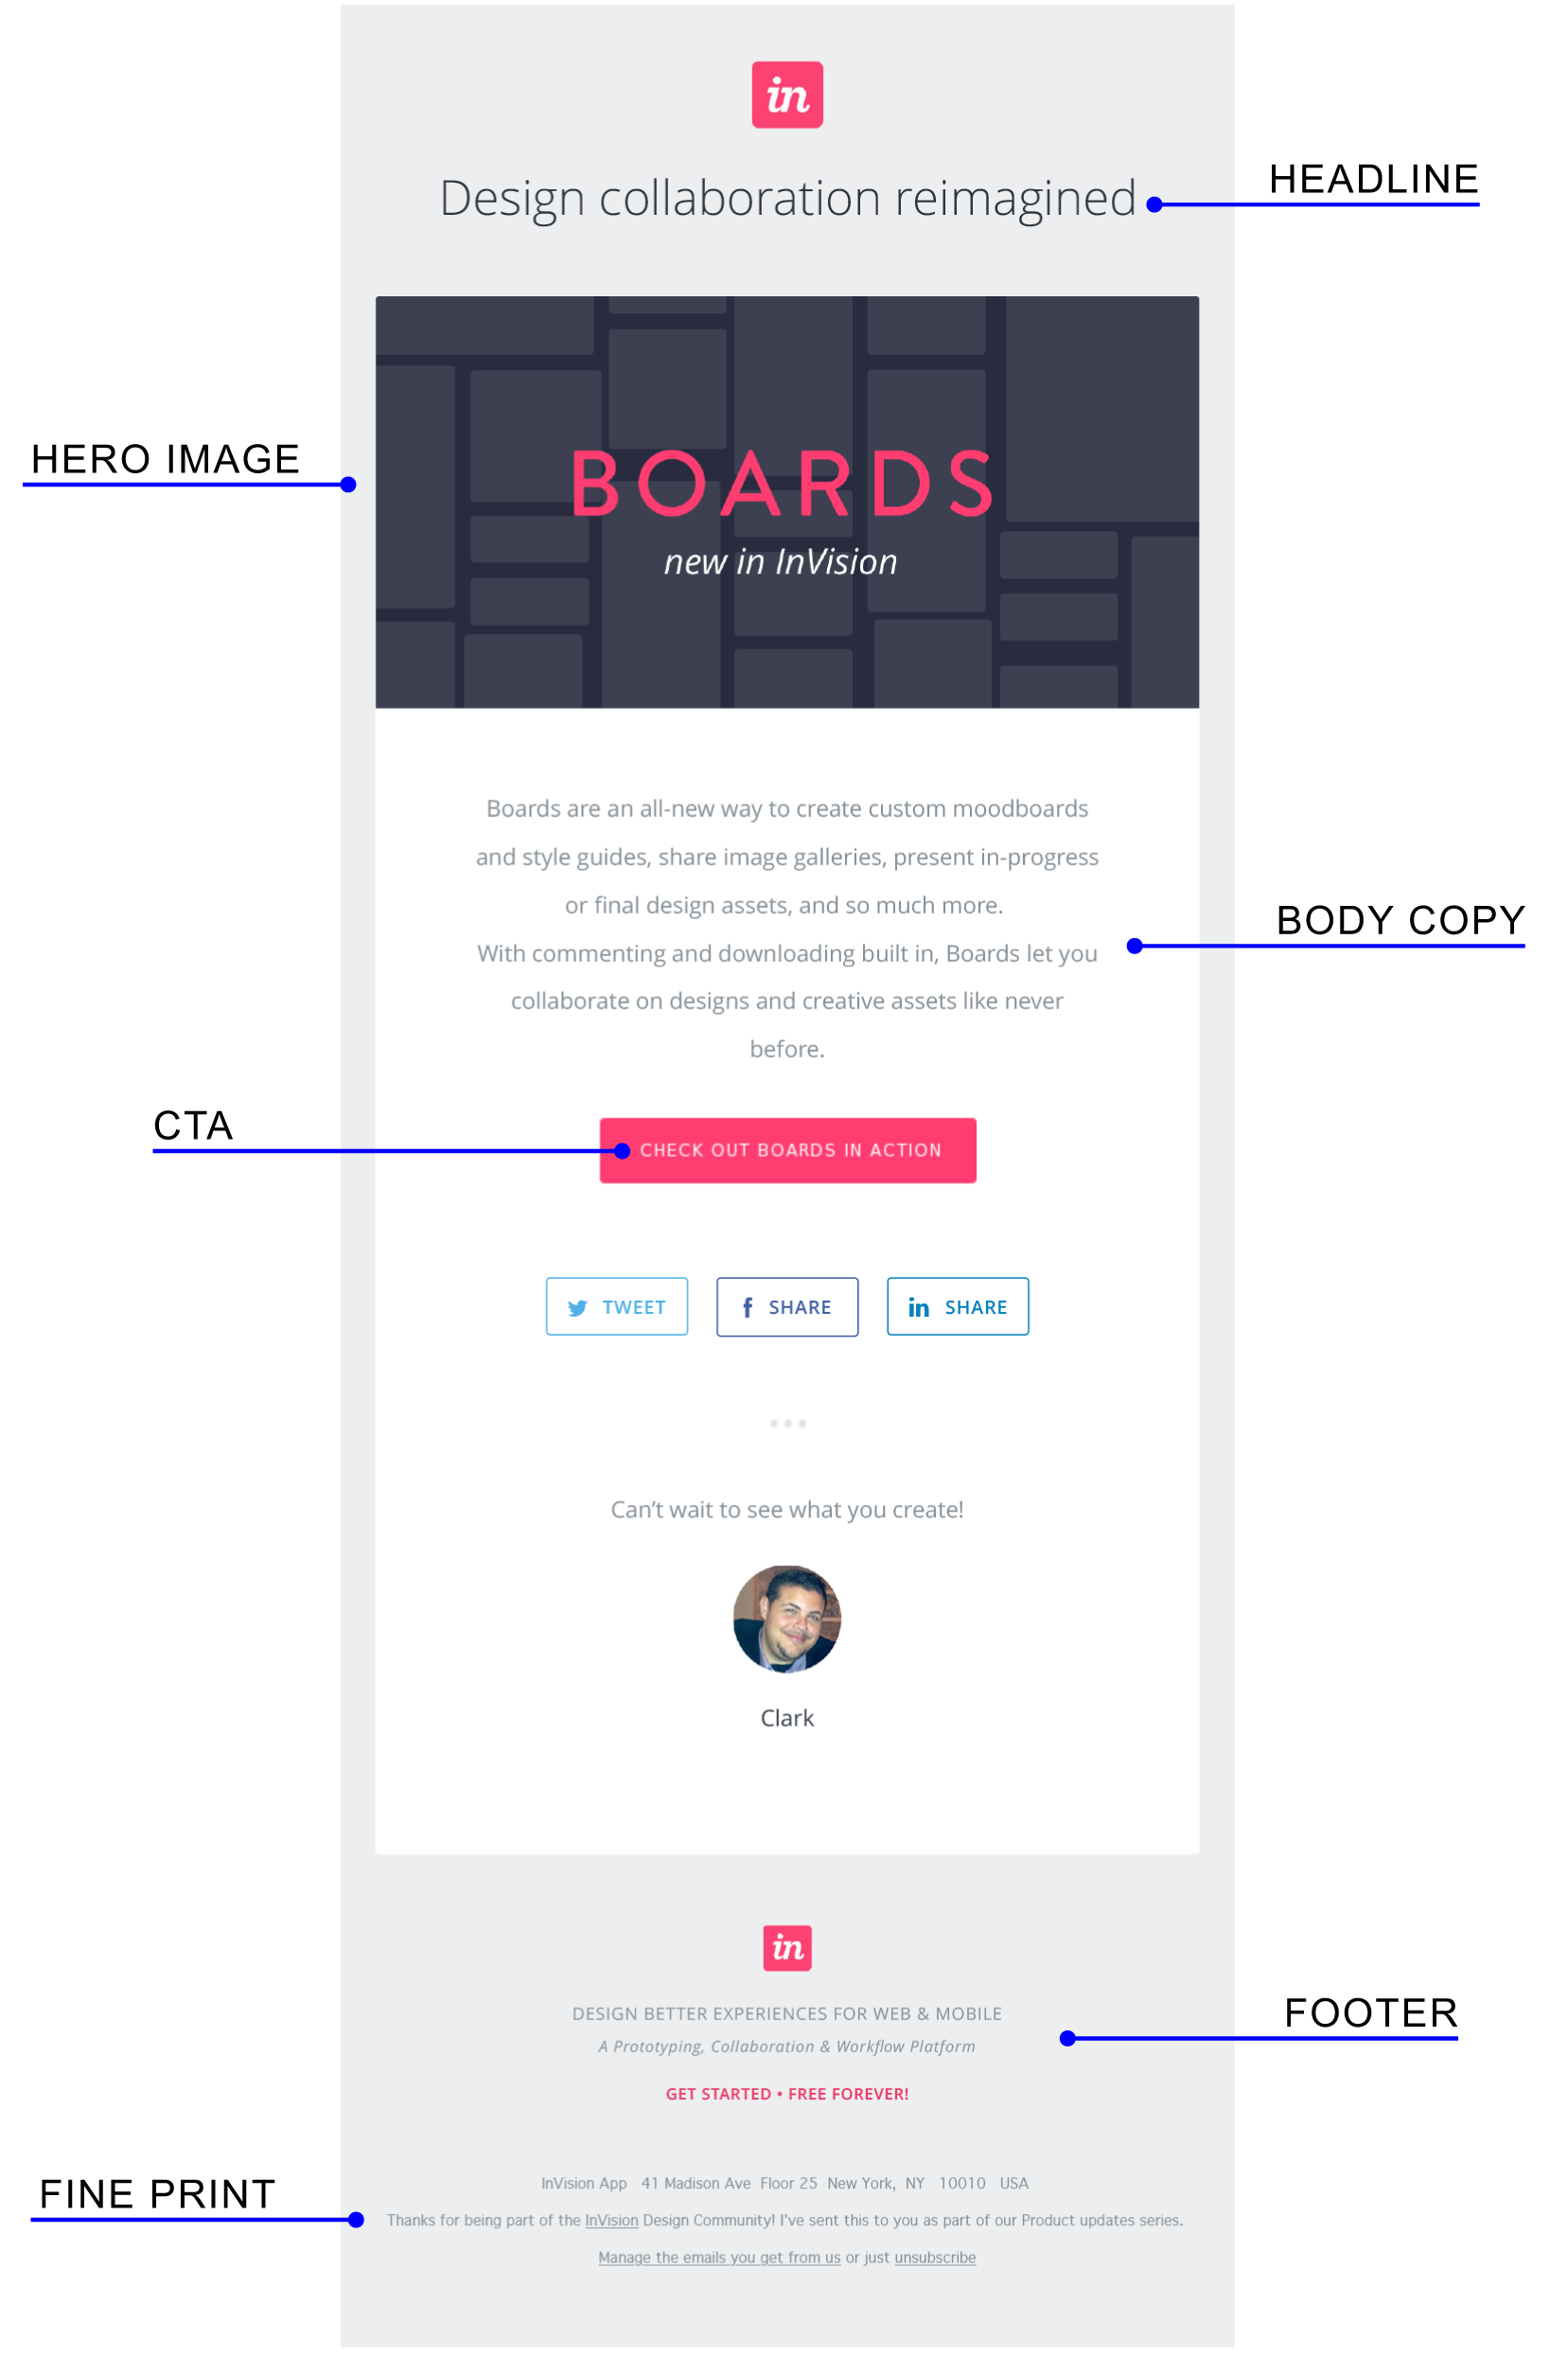 InVision's email uses the email structure we've been discussing as its bones, then tweaks it to call attention to some components.